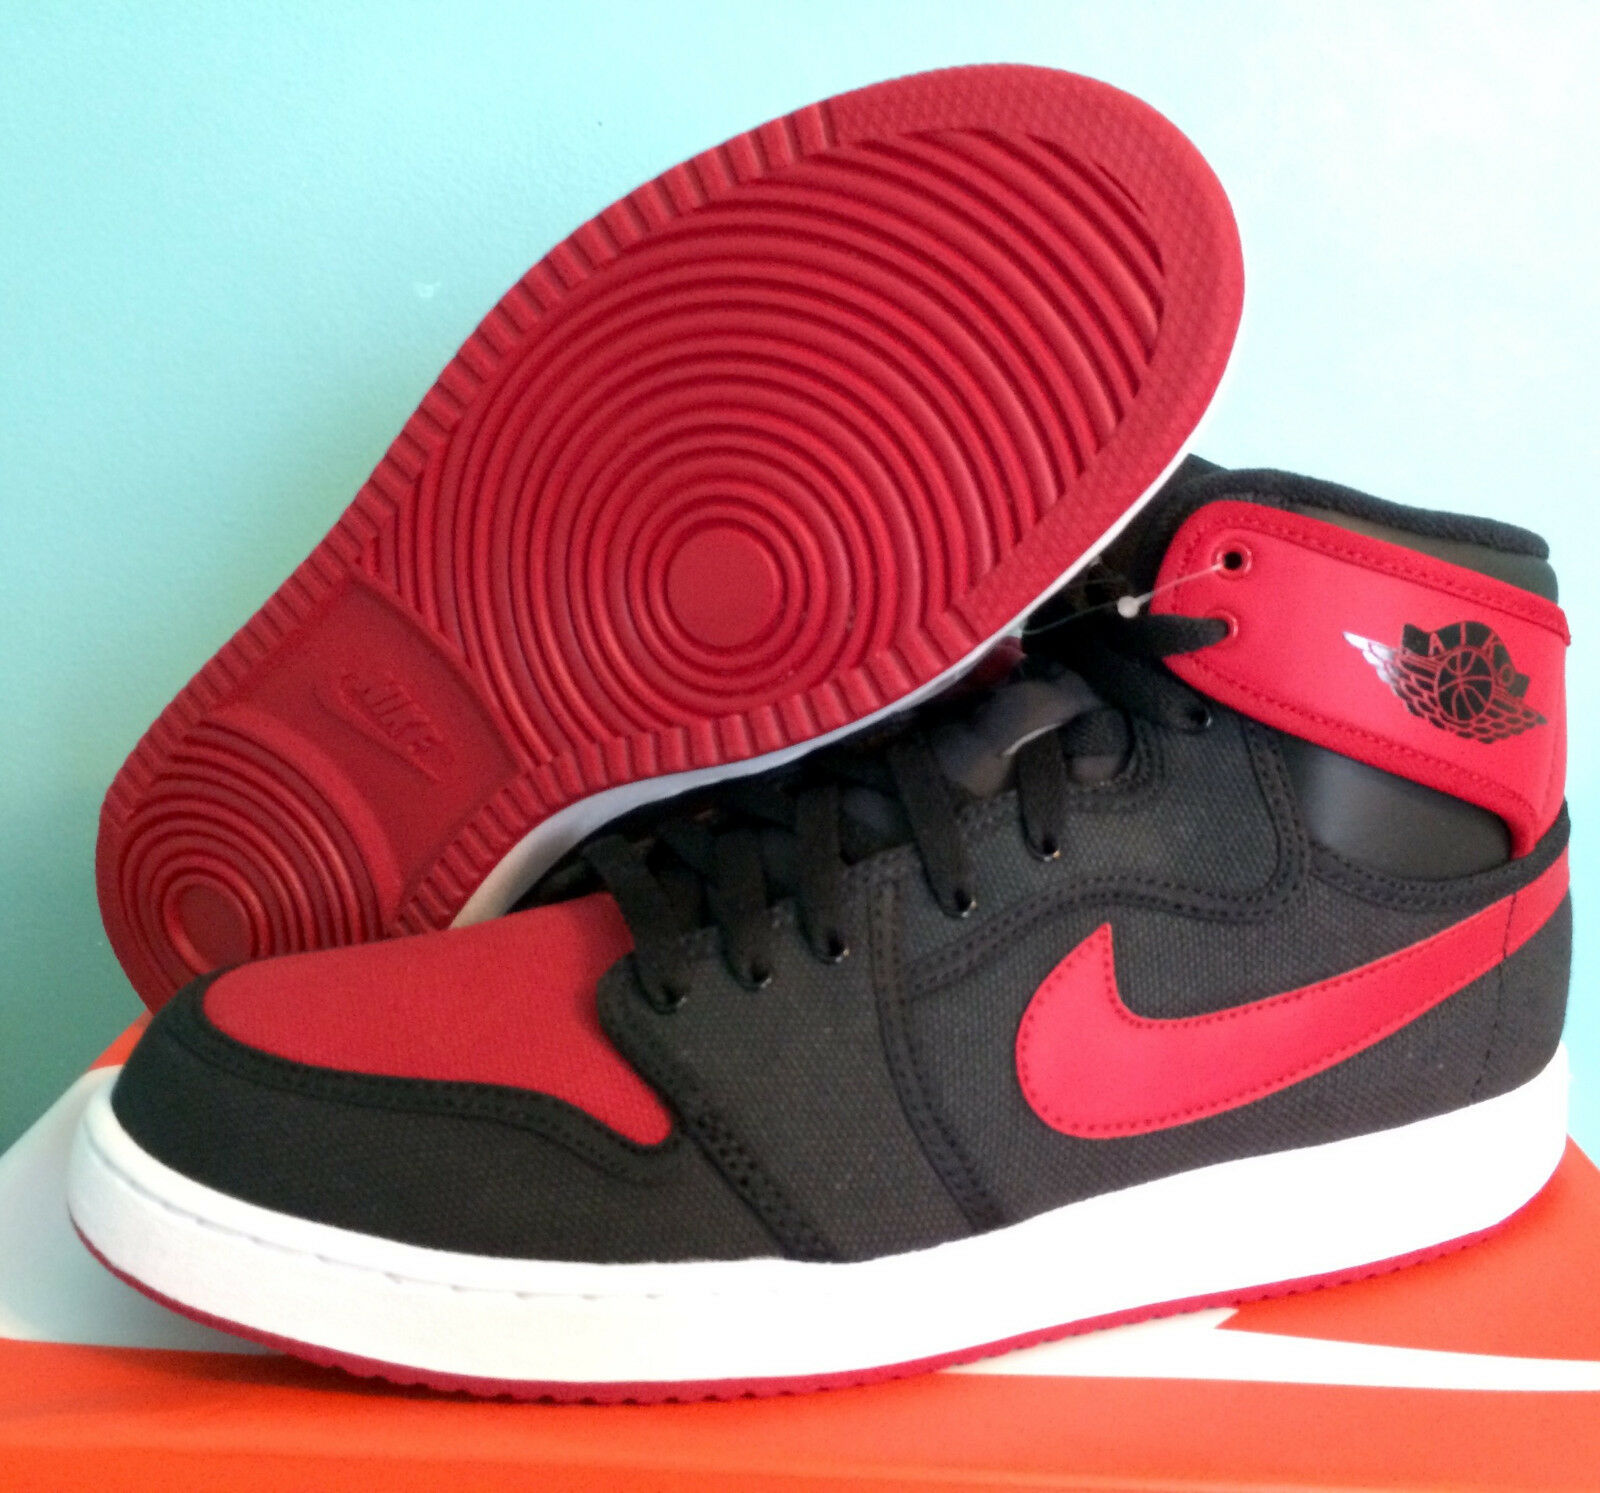 NIKE AJ1 KO HIGH OG BRED, size 11.5 Deadstock Factory Laced with receipt